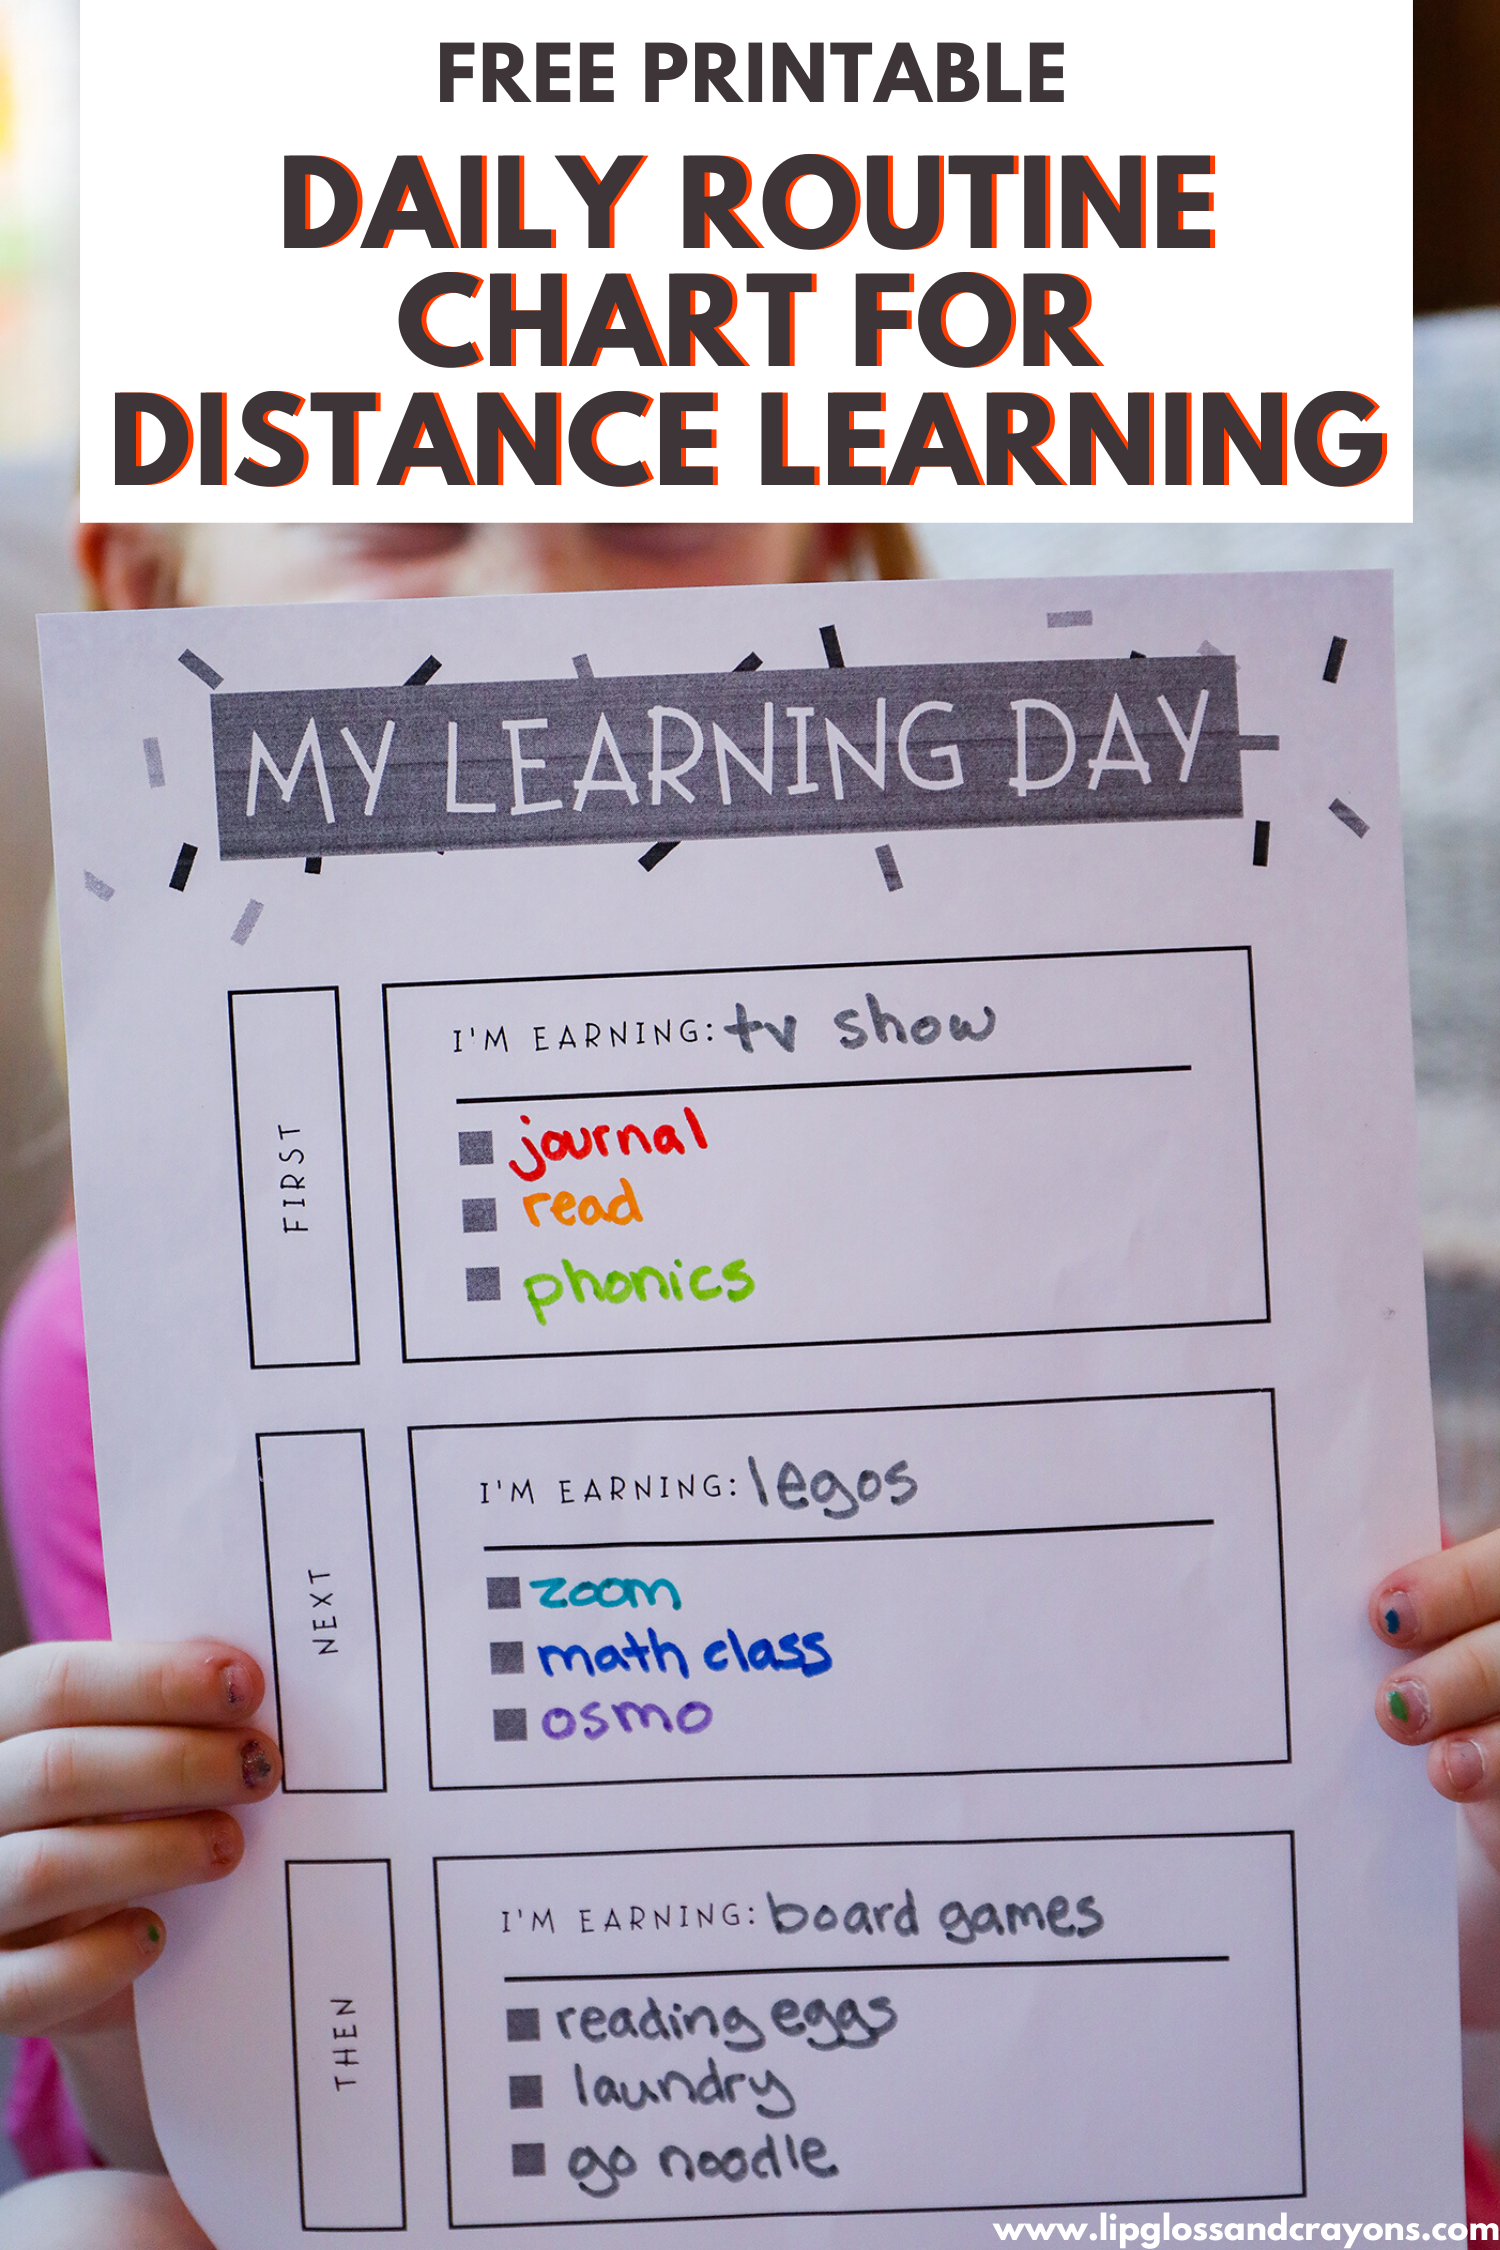 My Learning Day Daily Routine Chart Printable Lipgloss And Crayons